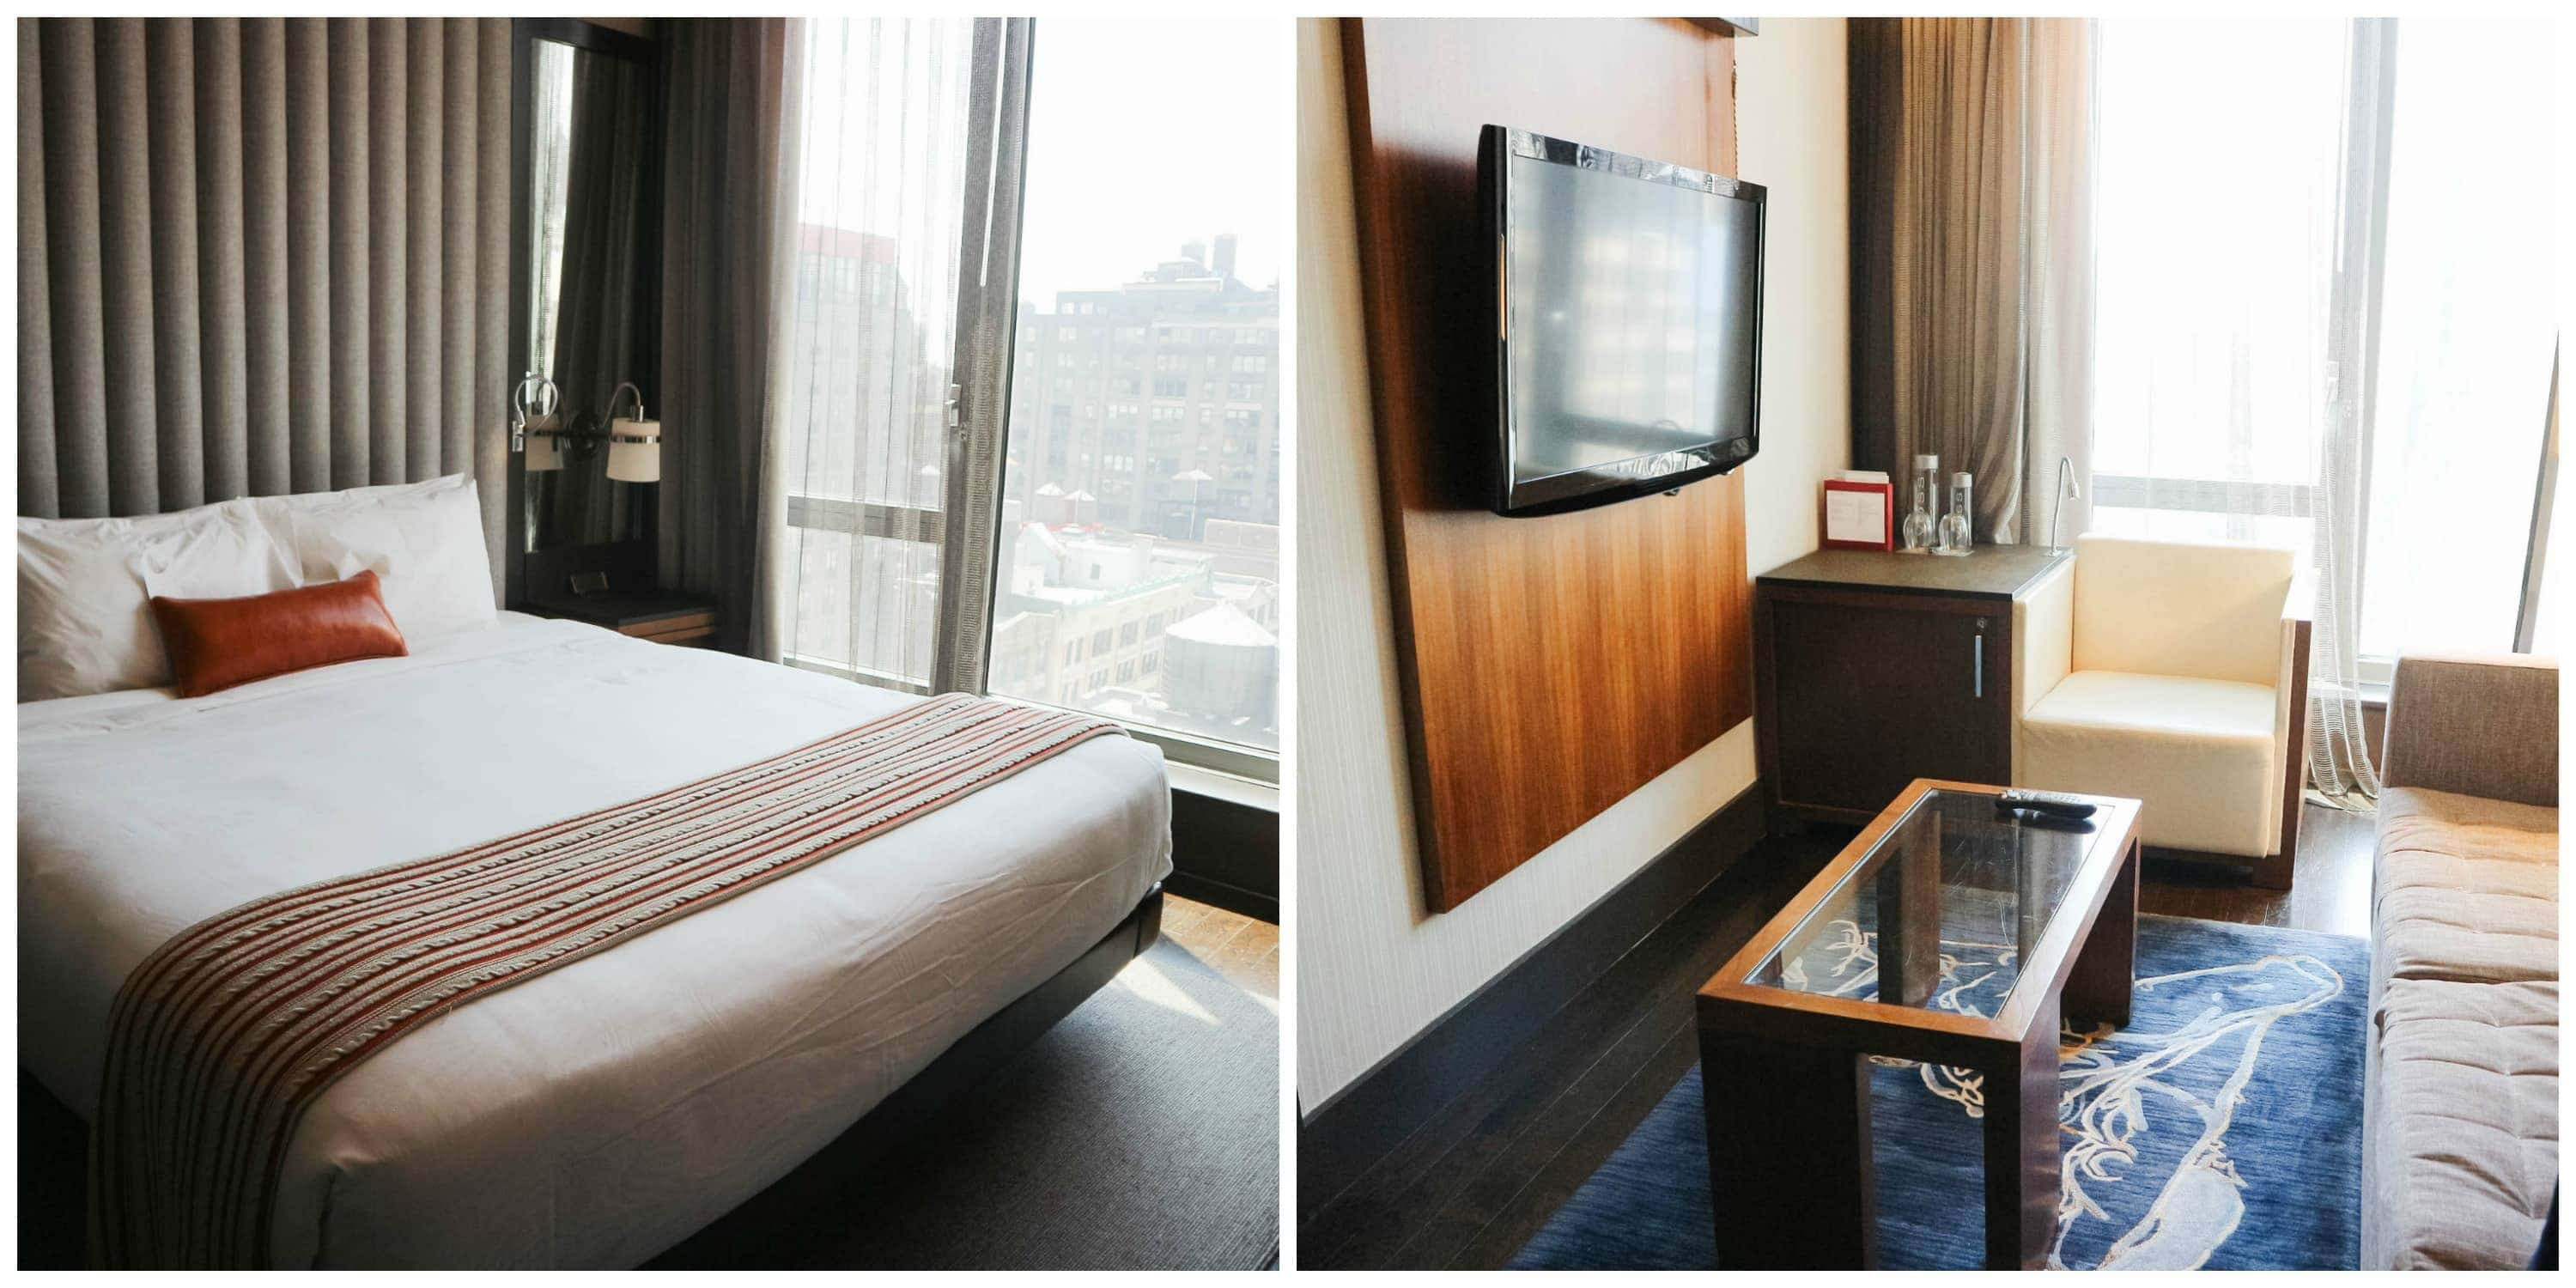 Kimpton Hotel Eventi Executive King Suite in New York City - New York City family trip by Meg O. on the Go